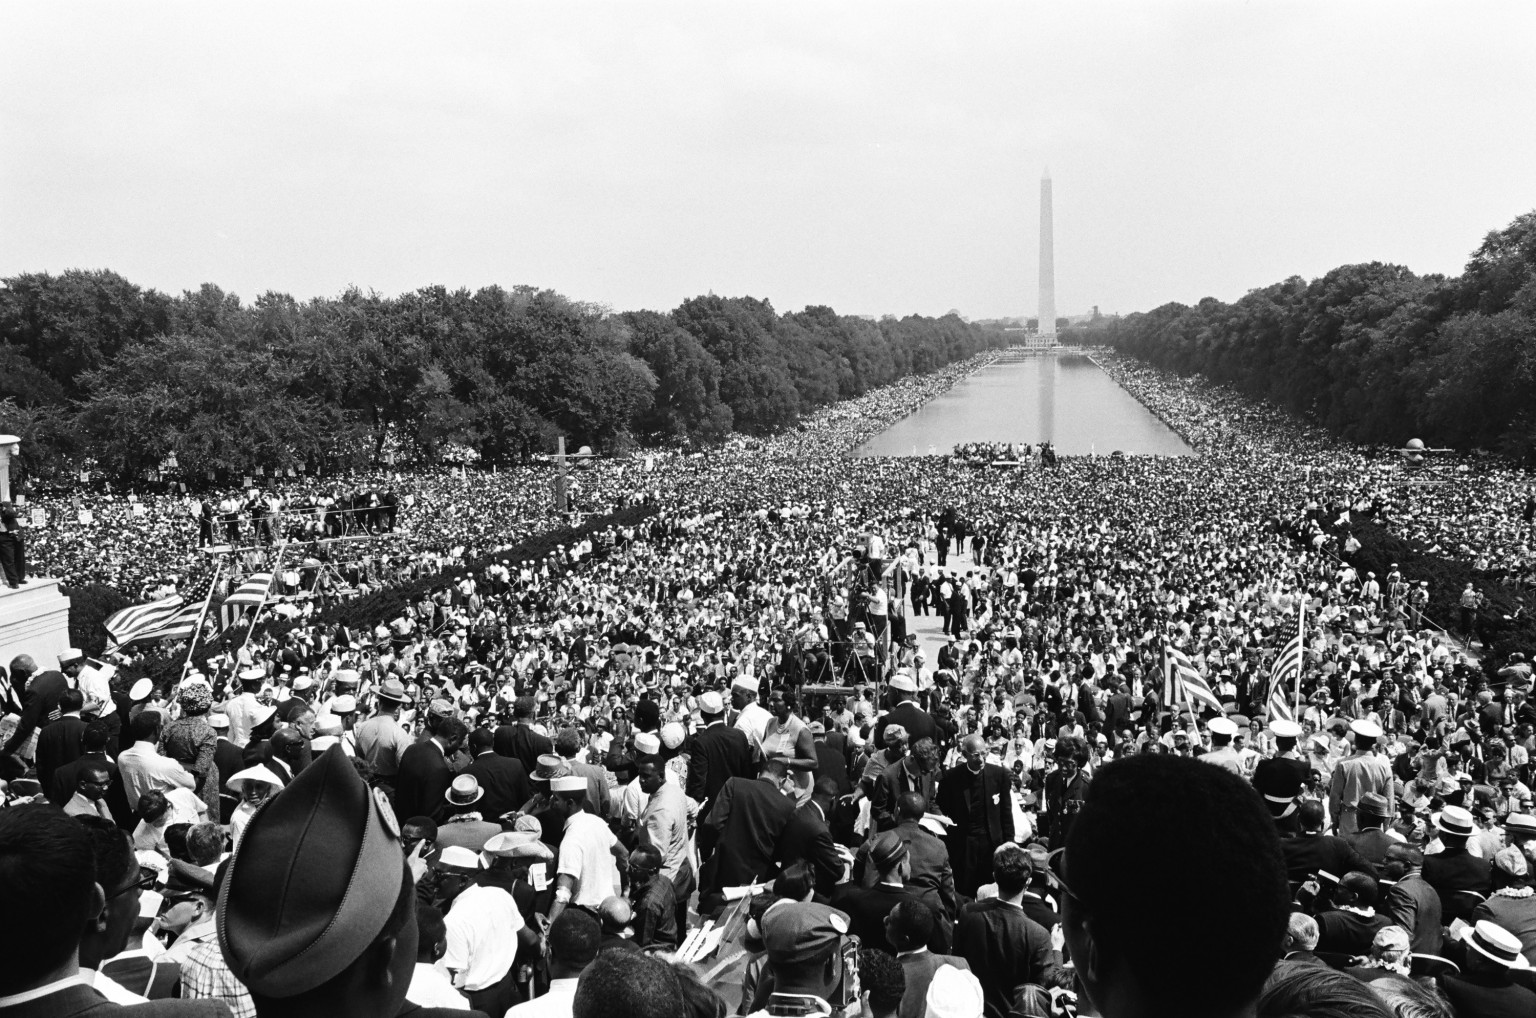 NBC News -- MARCH ON WASHINGTON FOR JOBS AND FREEDOM 1968 -- Pictured: Crowds gather at the National Mall during the March on Washington for Jobs and Freedom political rally in Washington, DC on August 28, 1963 -- (Photo by: NBC/NBCU Photo Bank via Getty Images)